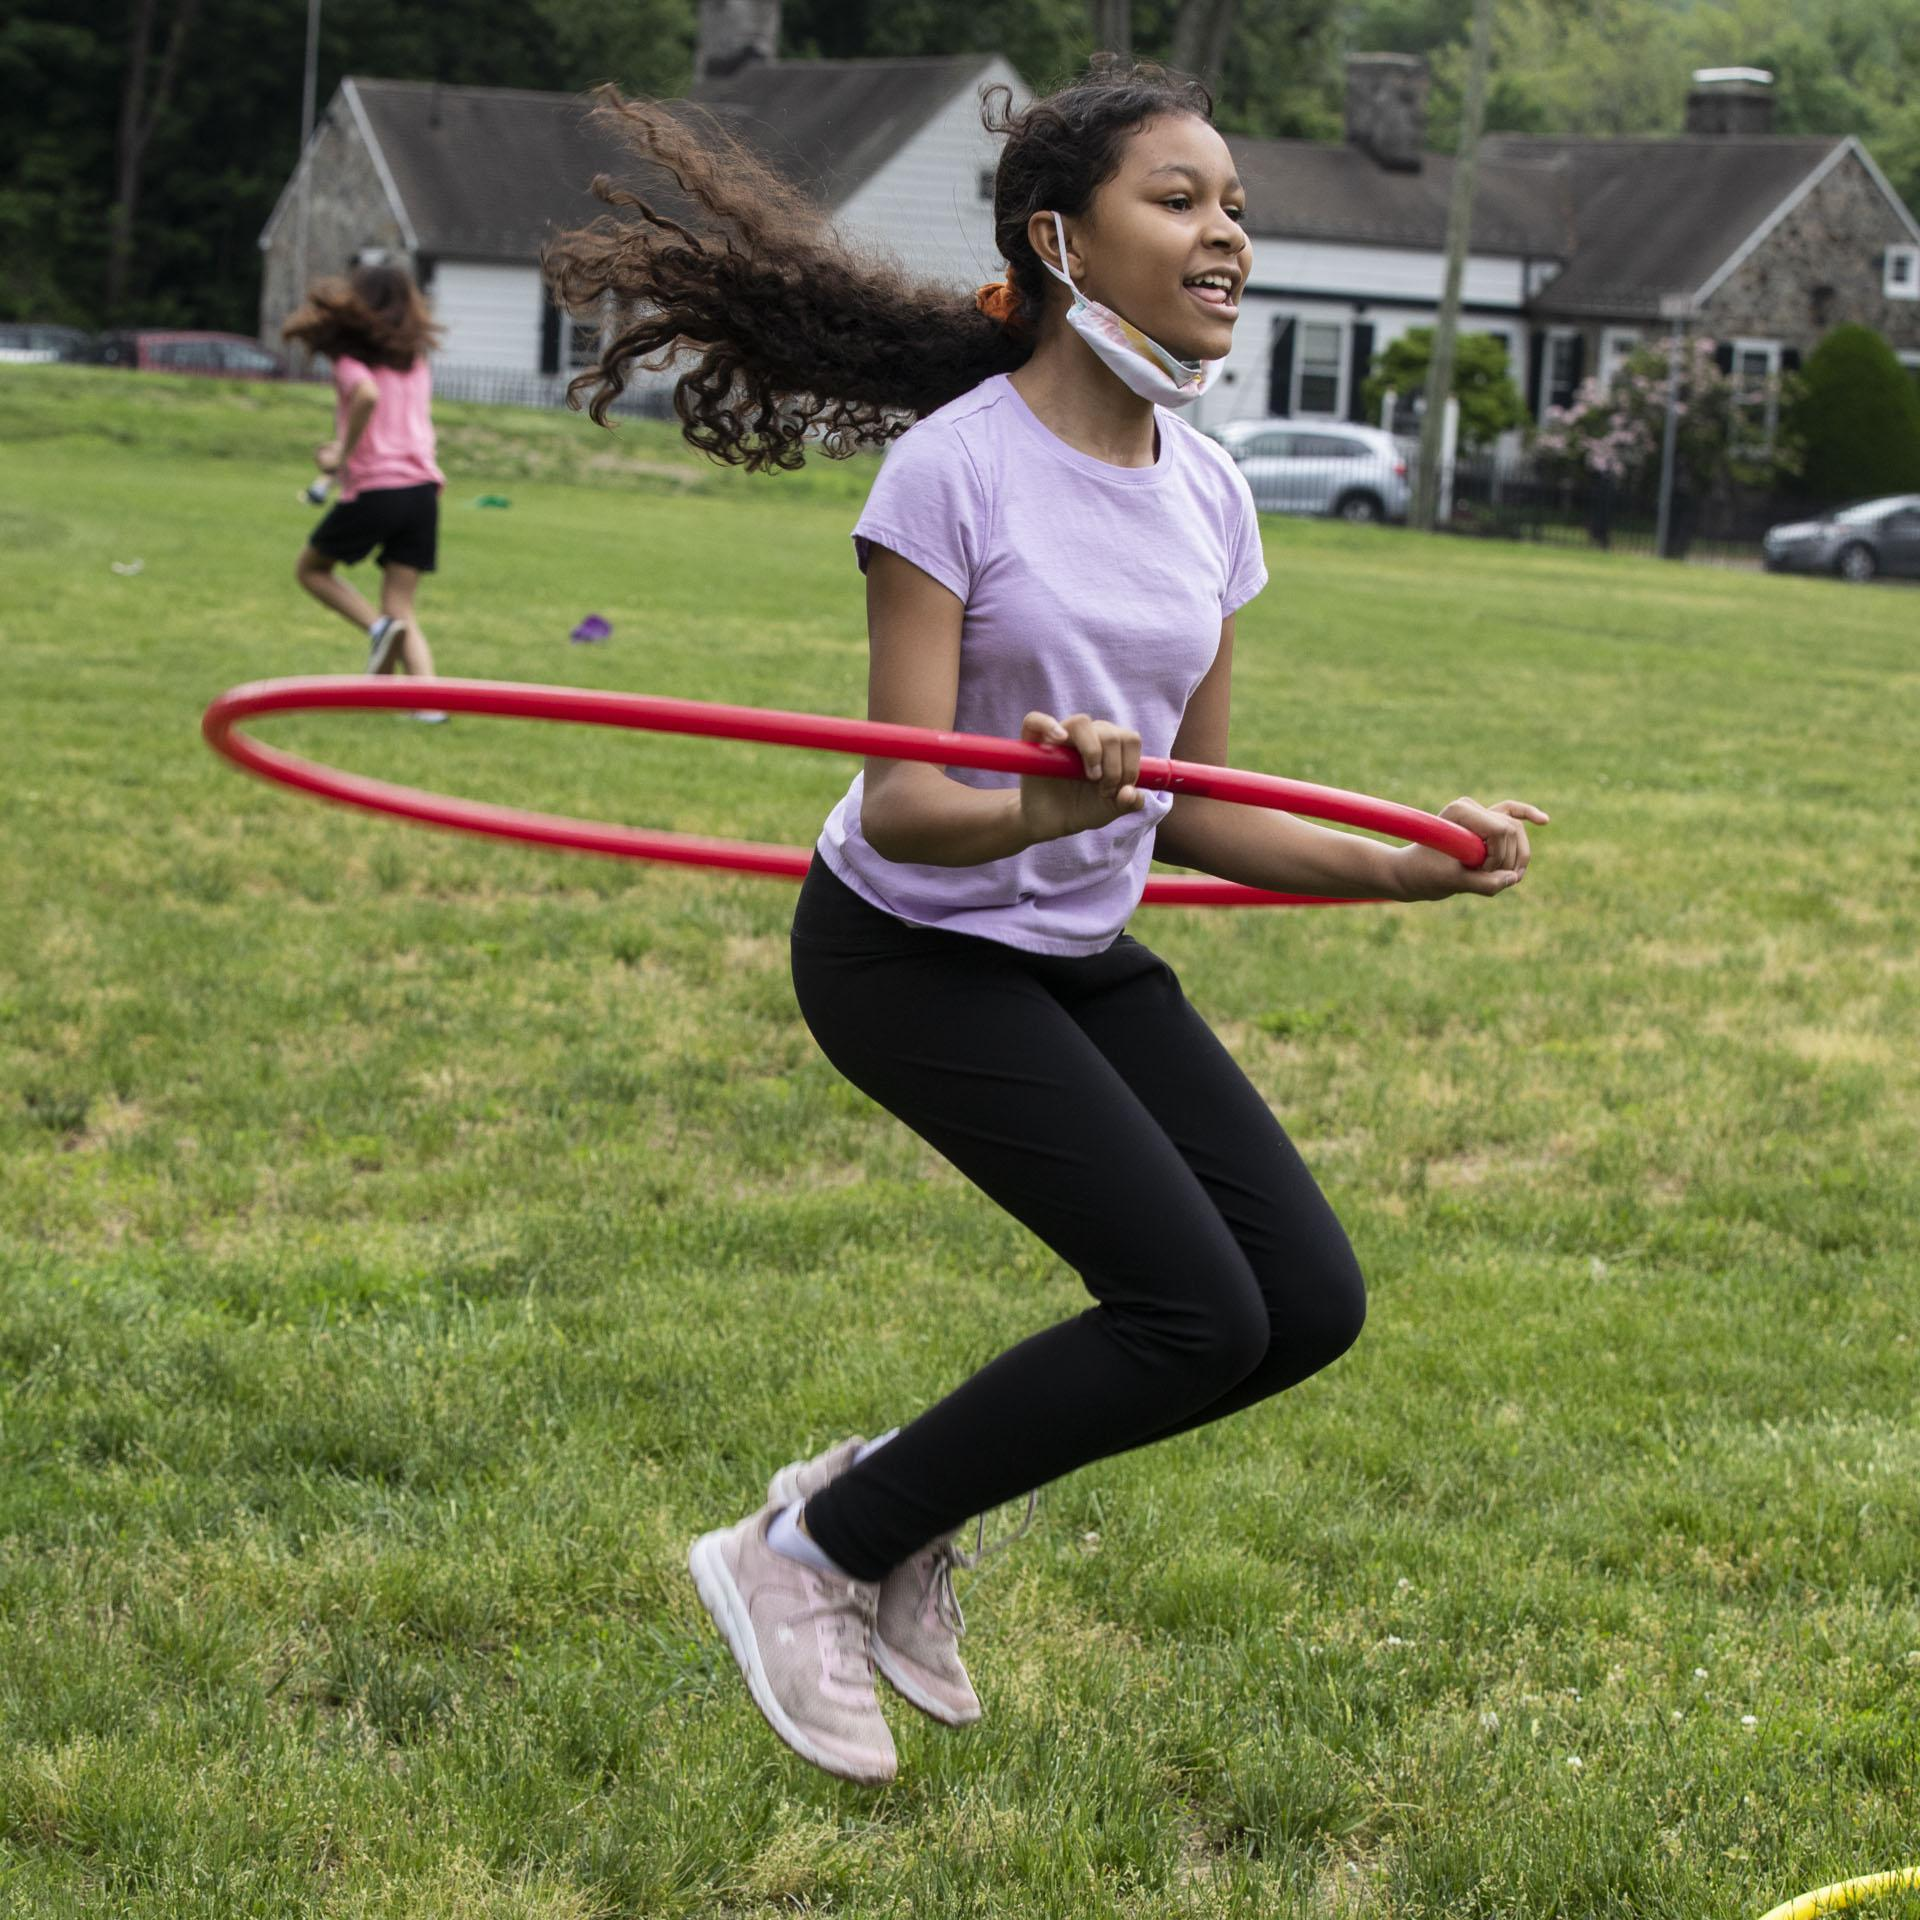 Student jumping with hula hoop